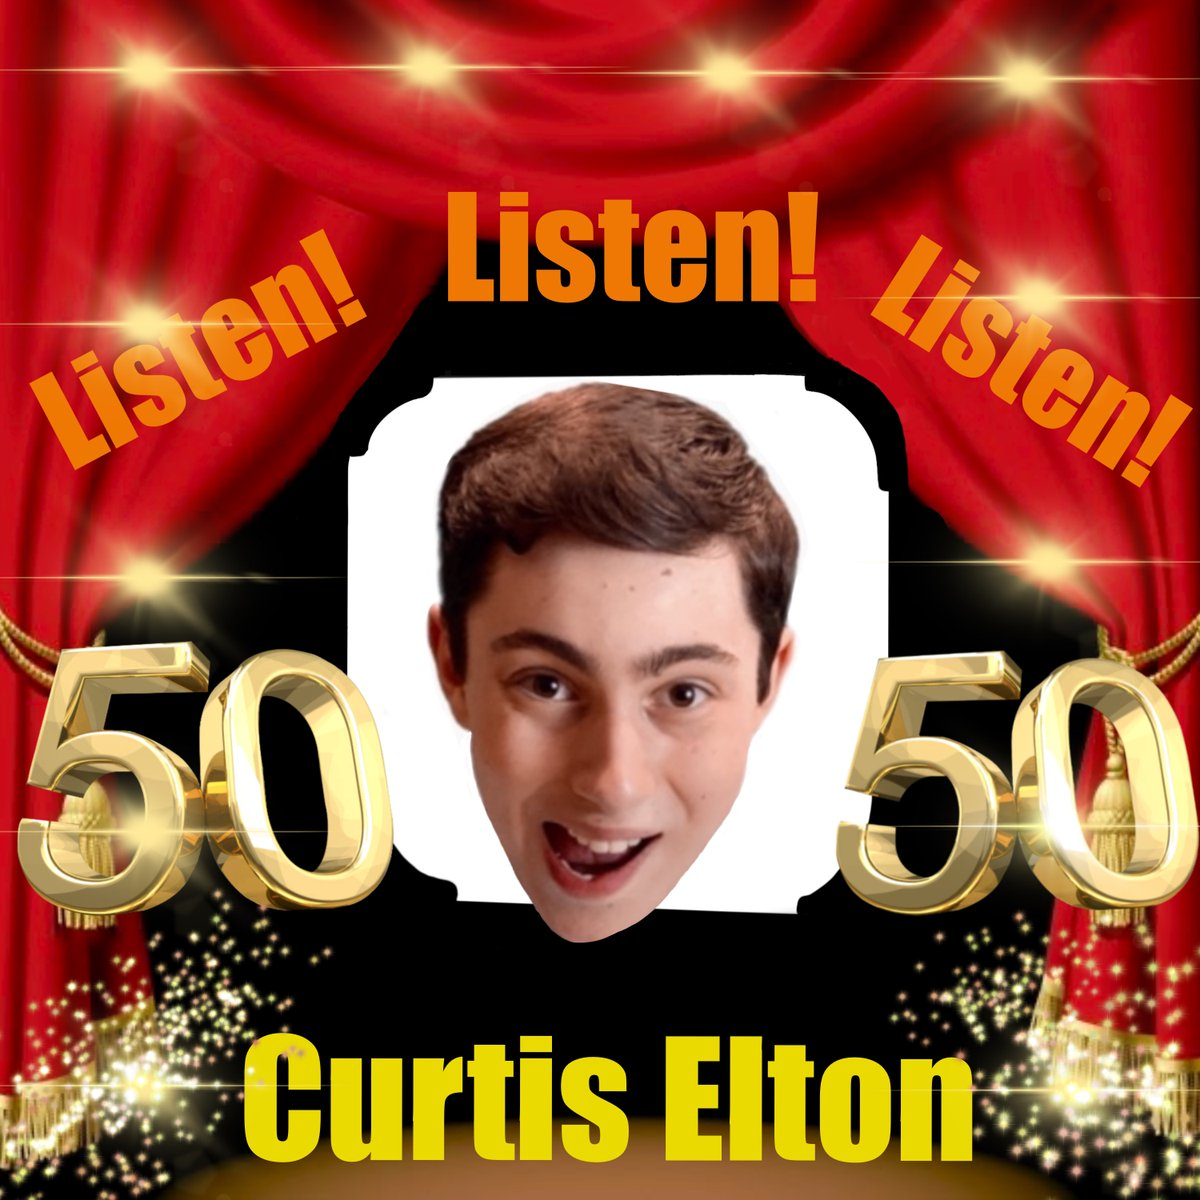 BIG NEWS!!!  This Week's Episode of Listen! Listen! Listen! is Going to be the 50th!!! That's Right! The Big 5-0!  To Celebrate, I've Changed the Profile Picture!!! Enjoy the Show🥳👍  #Podcast #50thEpisode #ListenListenListen #NewLogo #Entertainment #Comedy @ApplePodcasts #Enjoy https://t.co/JFD2TFi8Rj